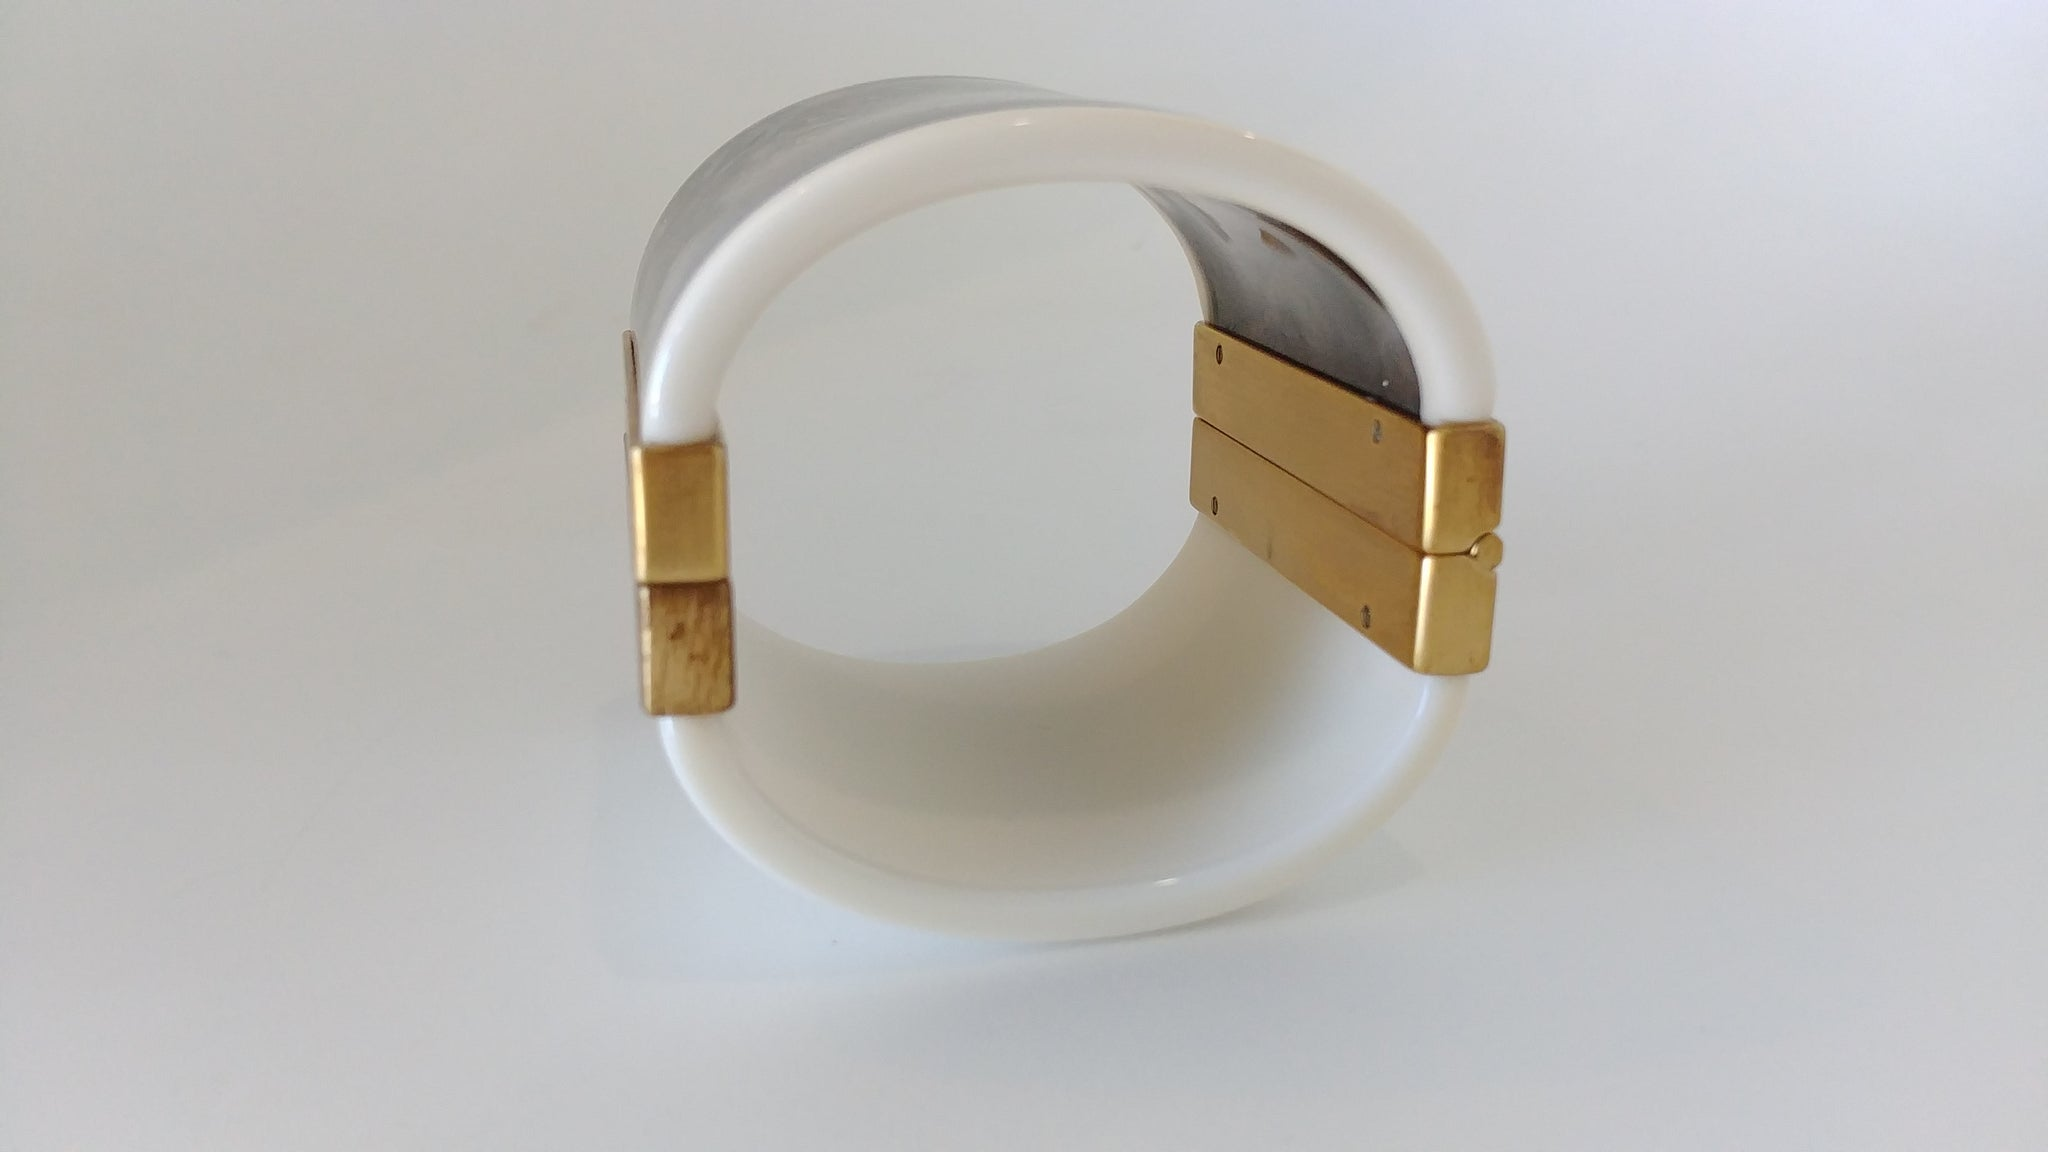 Fendi Plixiglass Bracelet with Gold Hardware